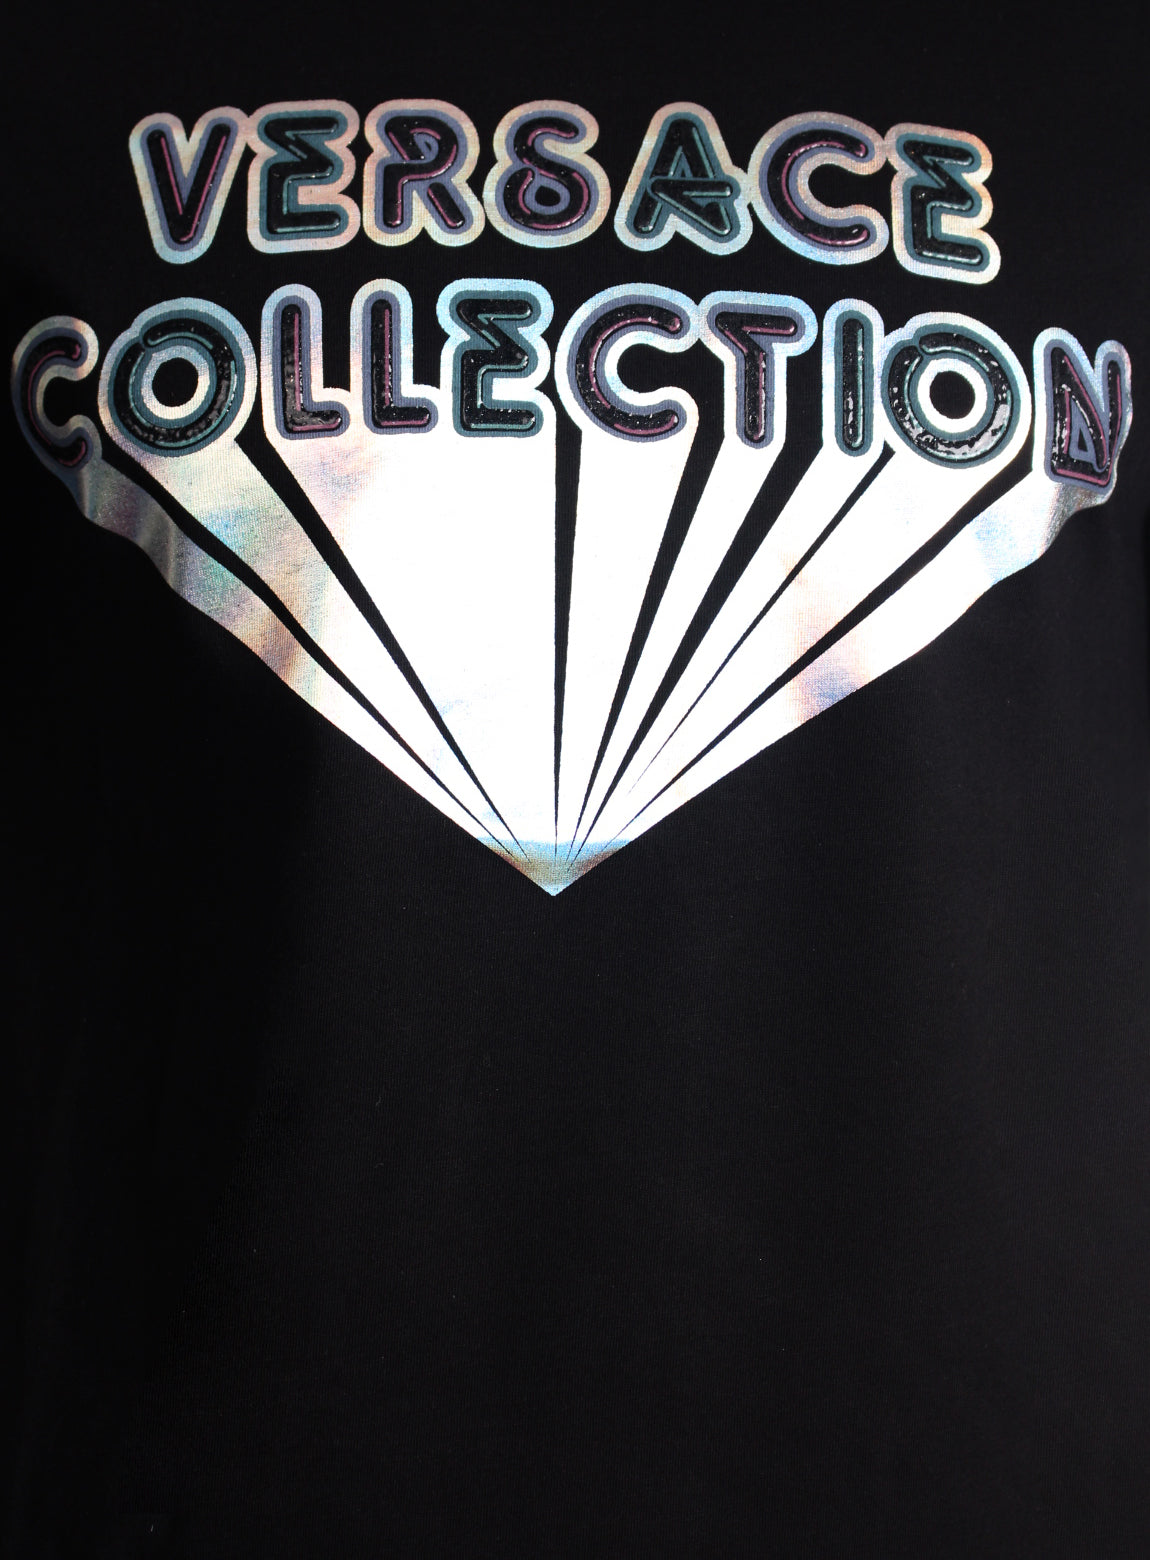 Versace Collection Tee Shirt